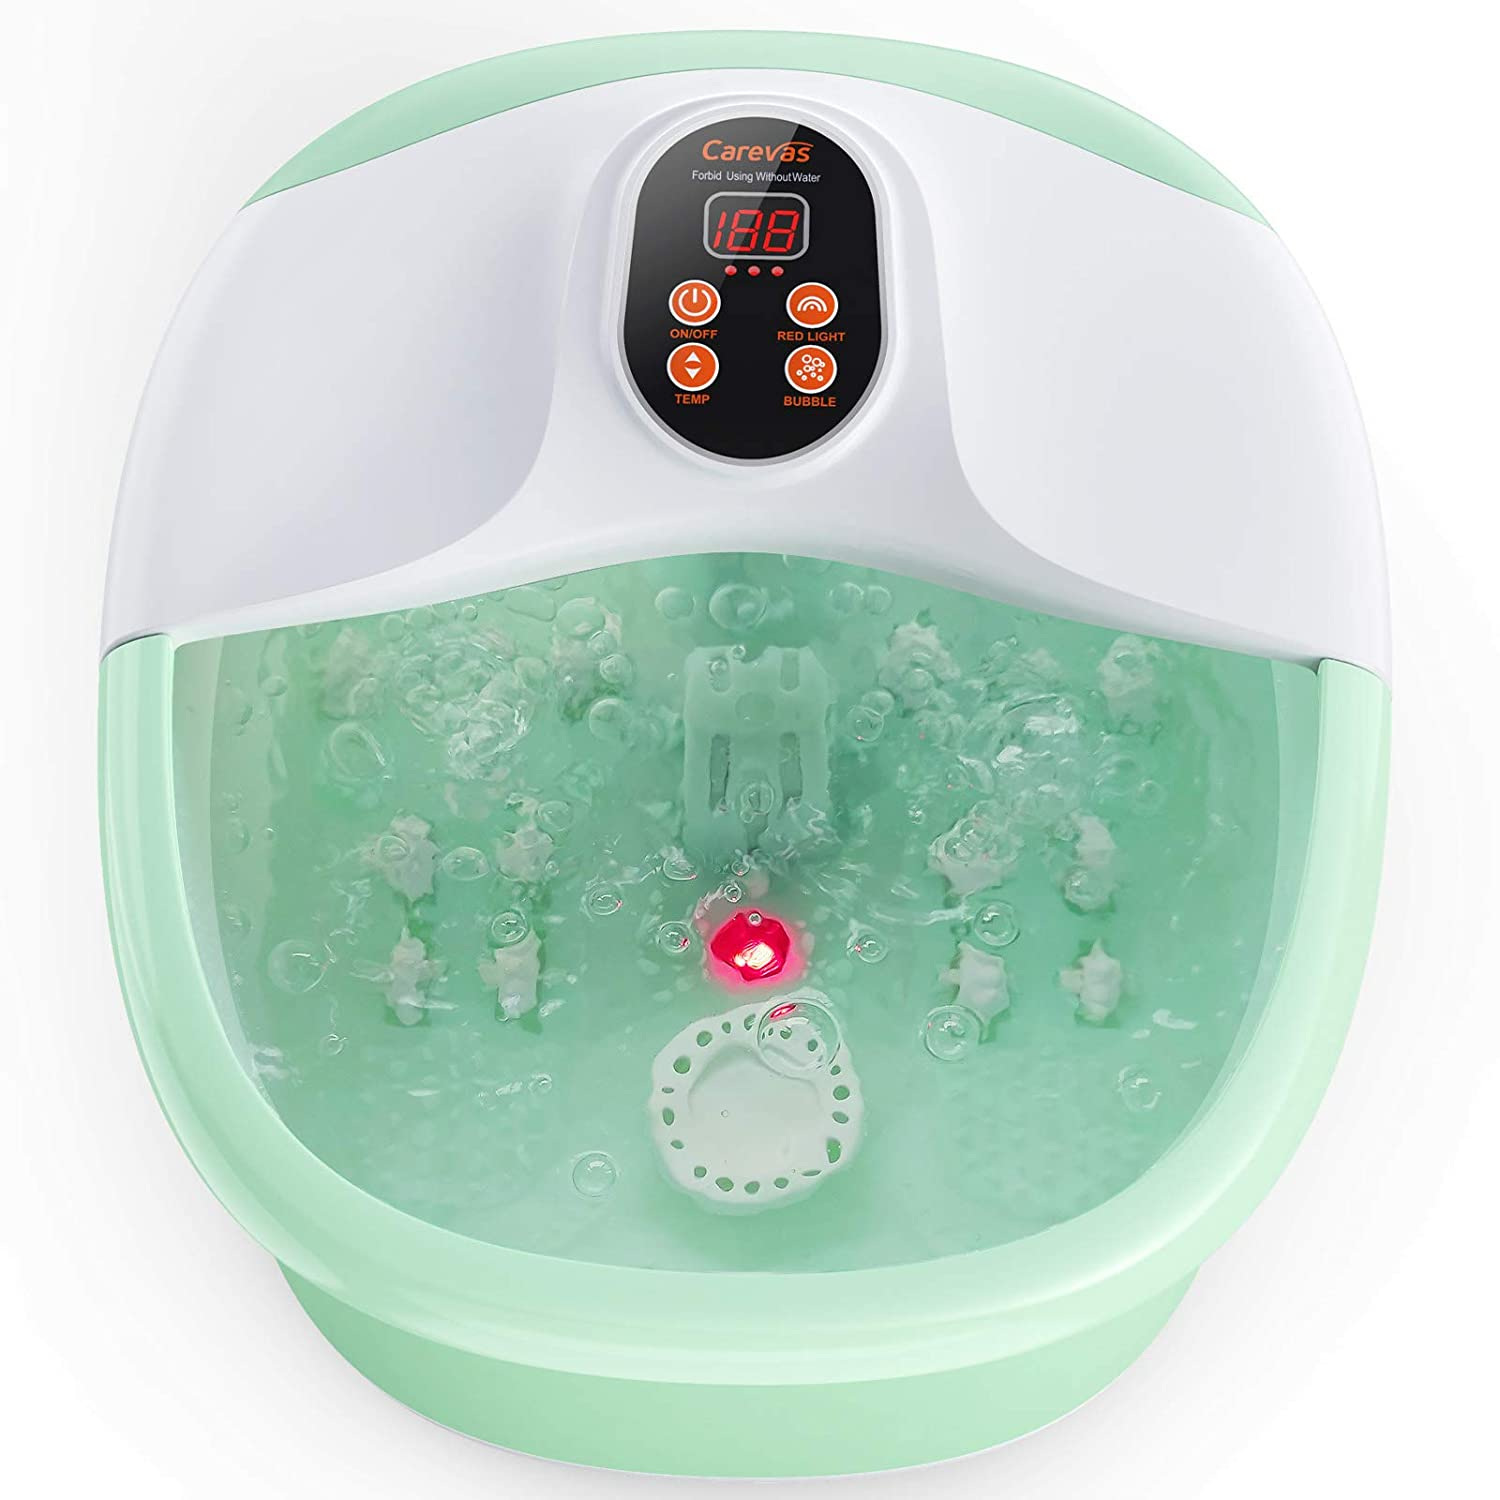 Carevas Foot Bath Massager, Heated Foot Soaker with O2 Bubbles, 14 Massaging Rollers for Tired Feet Stress Relief Home Use